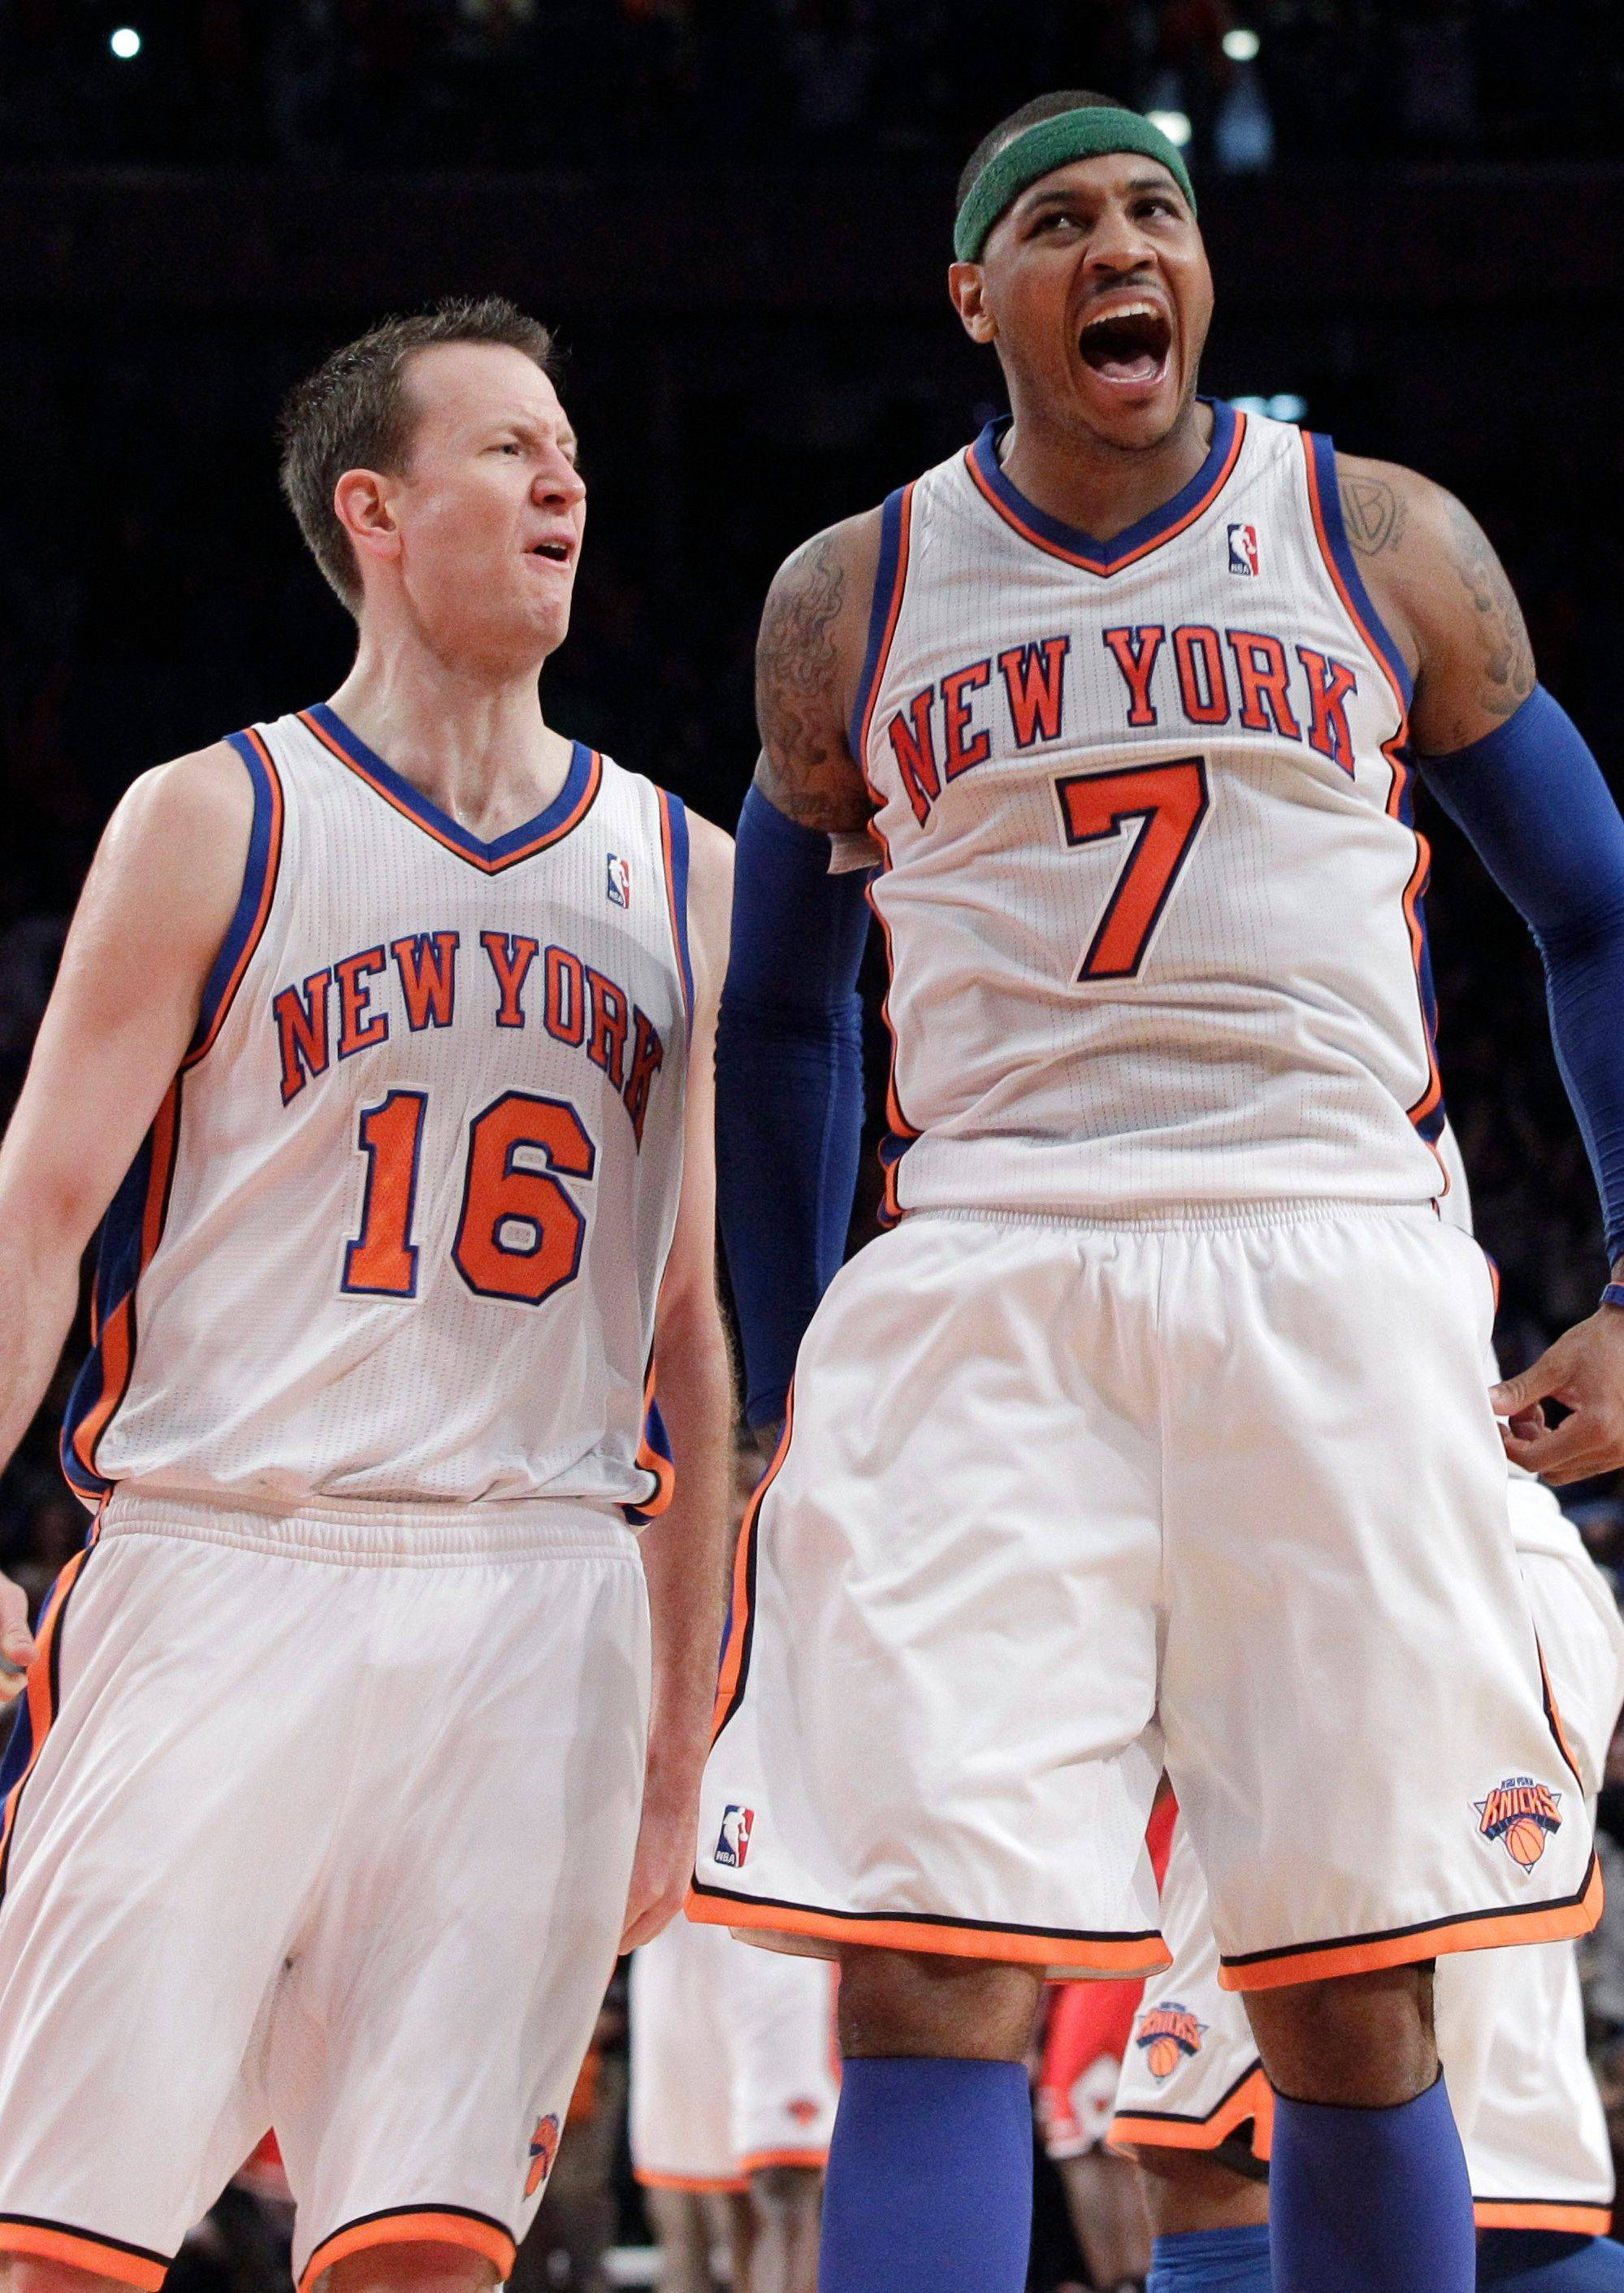 The Knicks' Carmelo Anthony (7) celebrates with Steve Novak after hitting a 3-point shot in the closing seconds of overtime Sunday to defeat the Bulls.